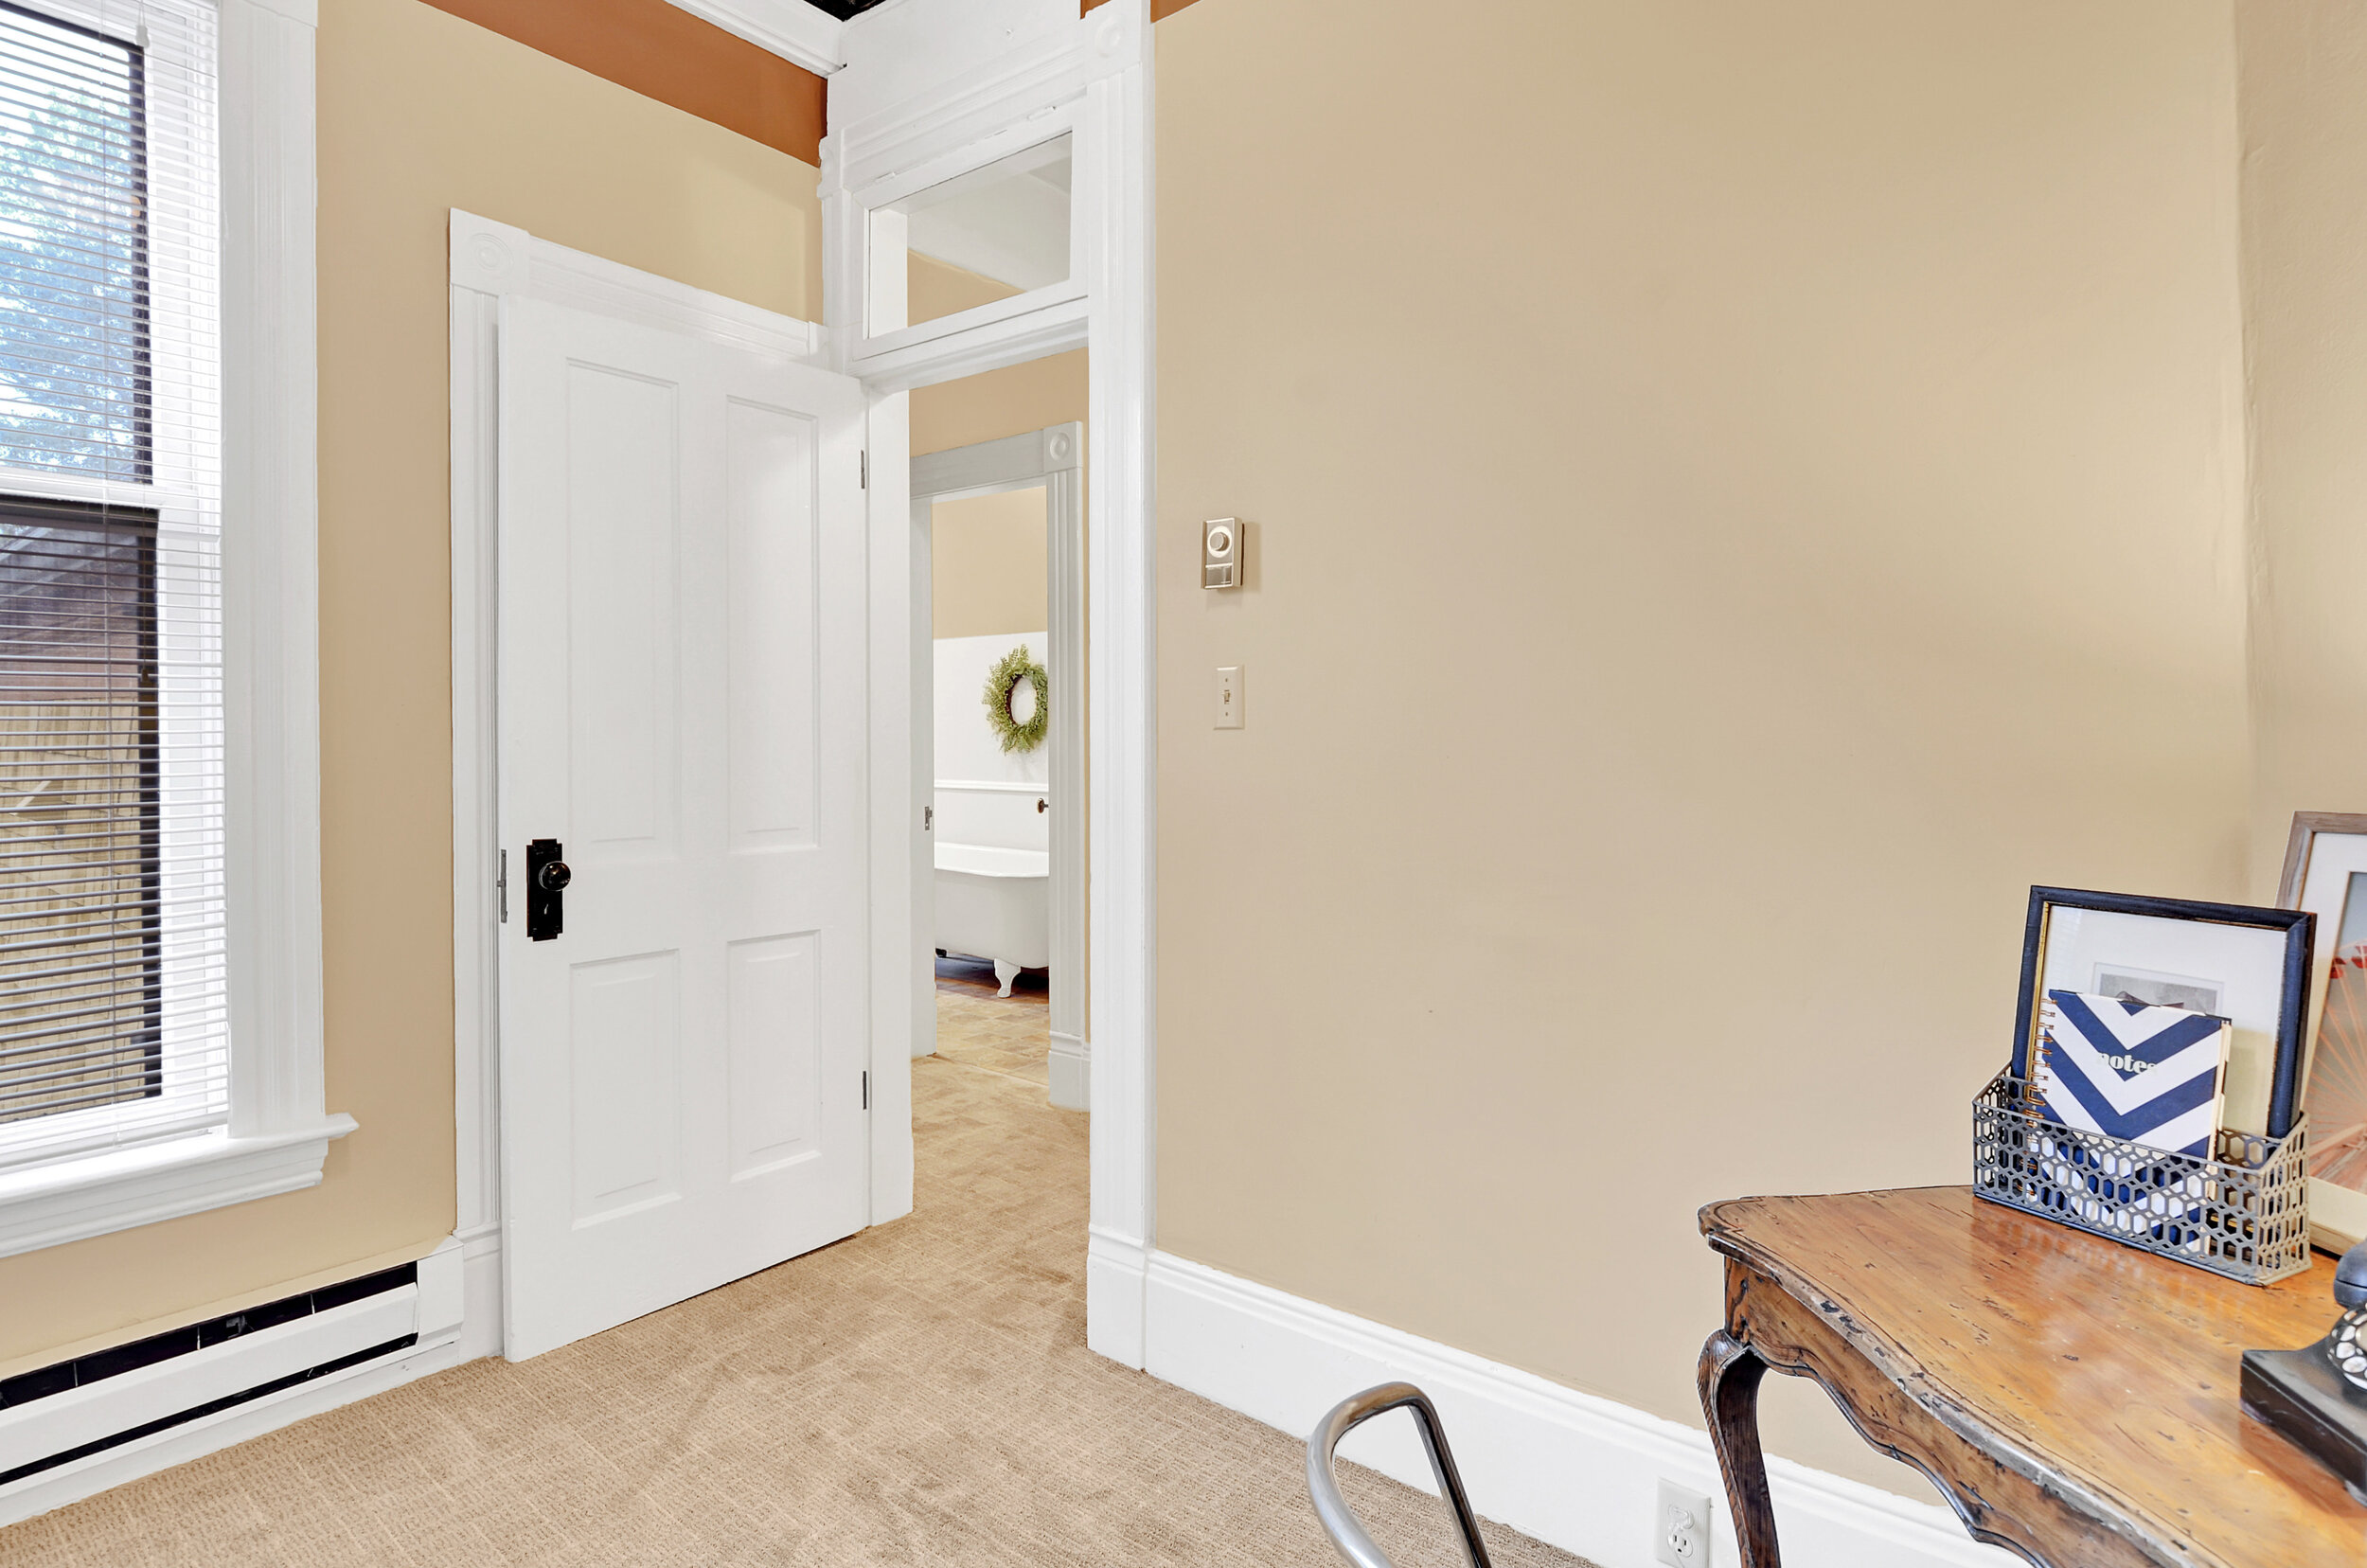 A third smaller bedroom is just across the hall from the bathroom. Here you'll find the access to the attic.